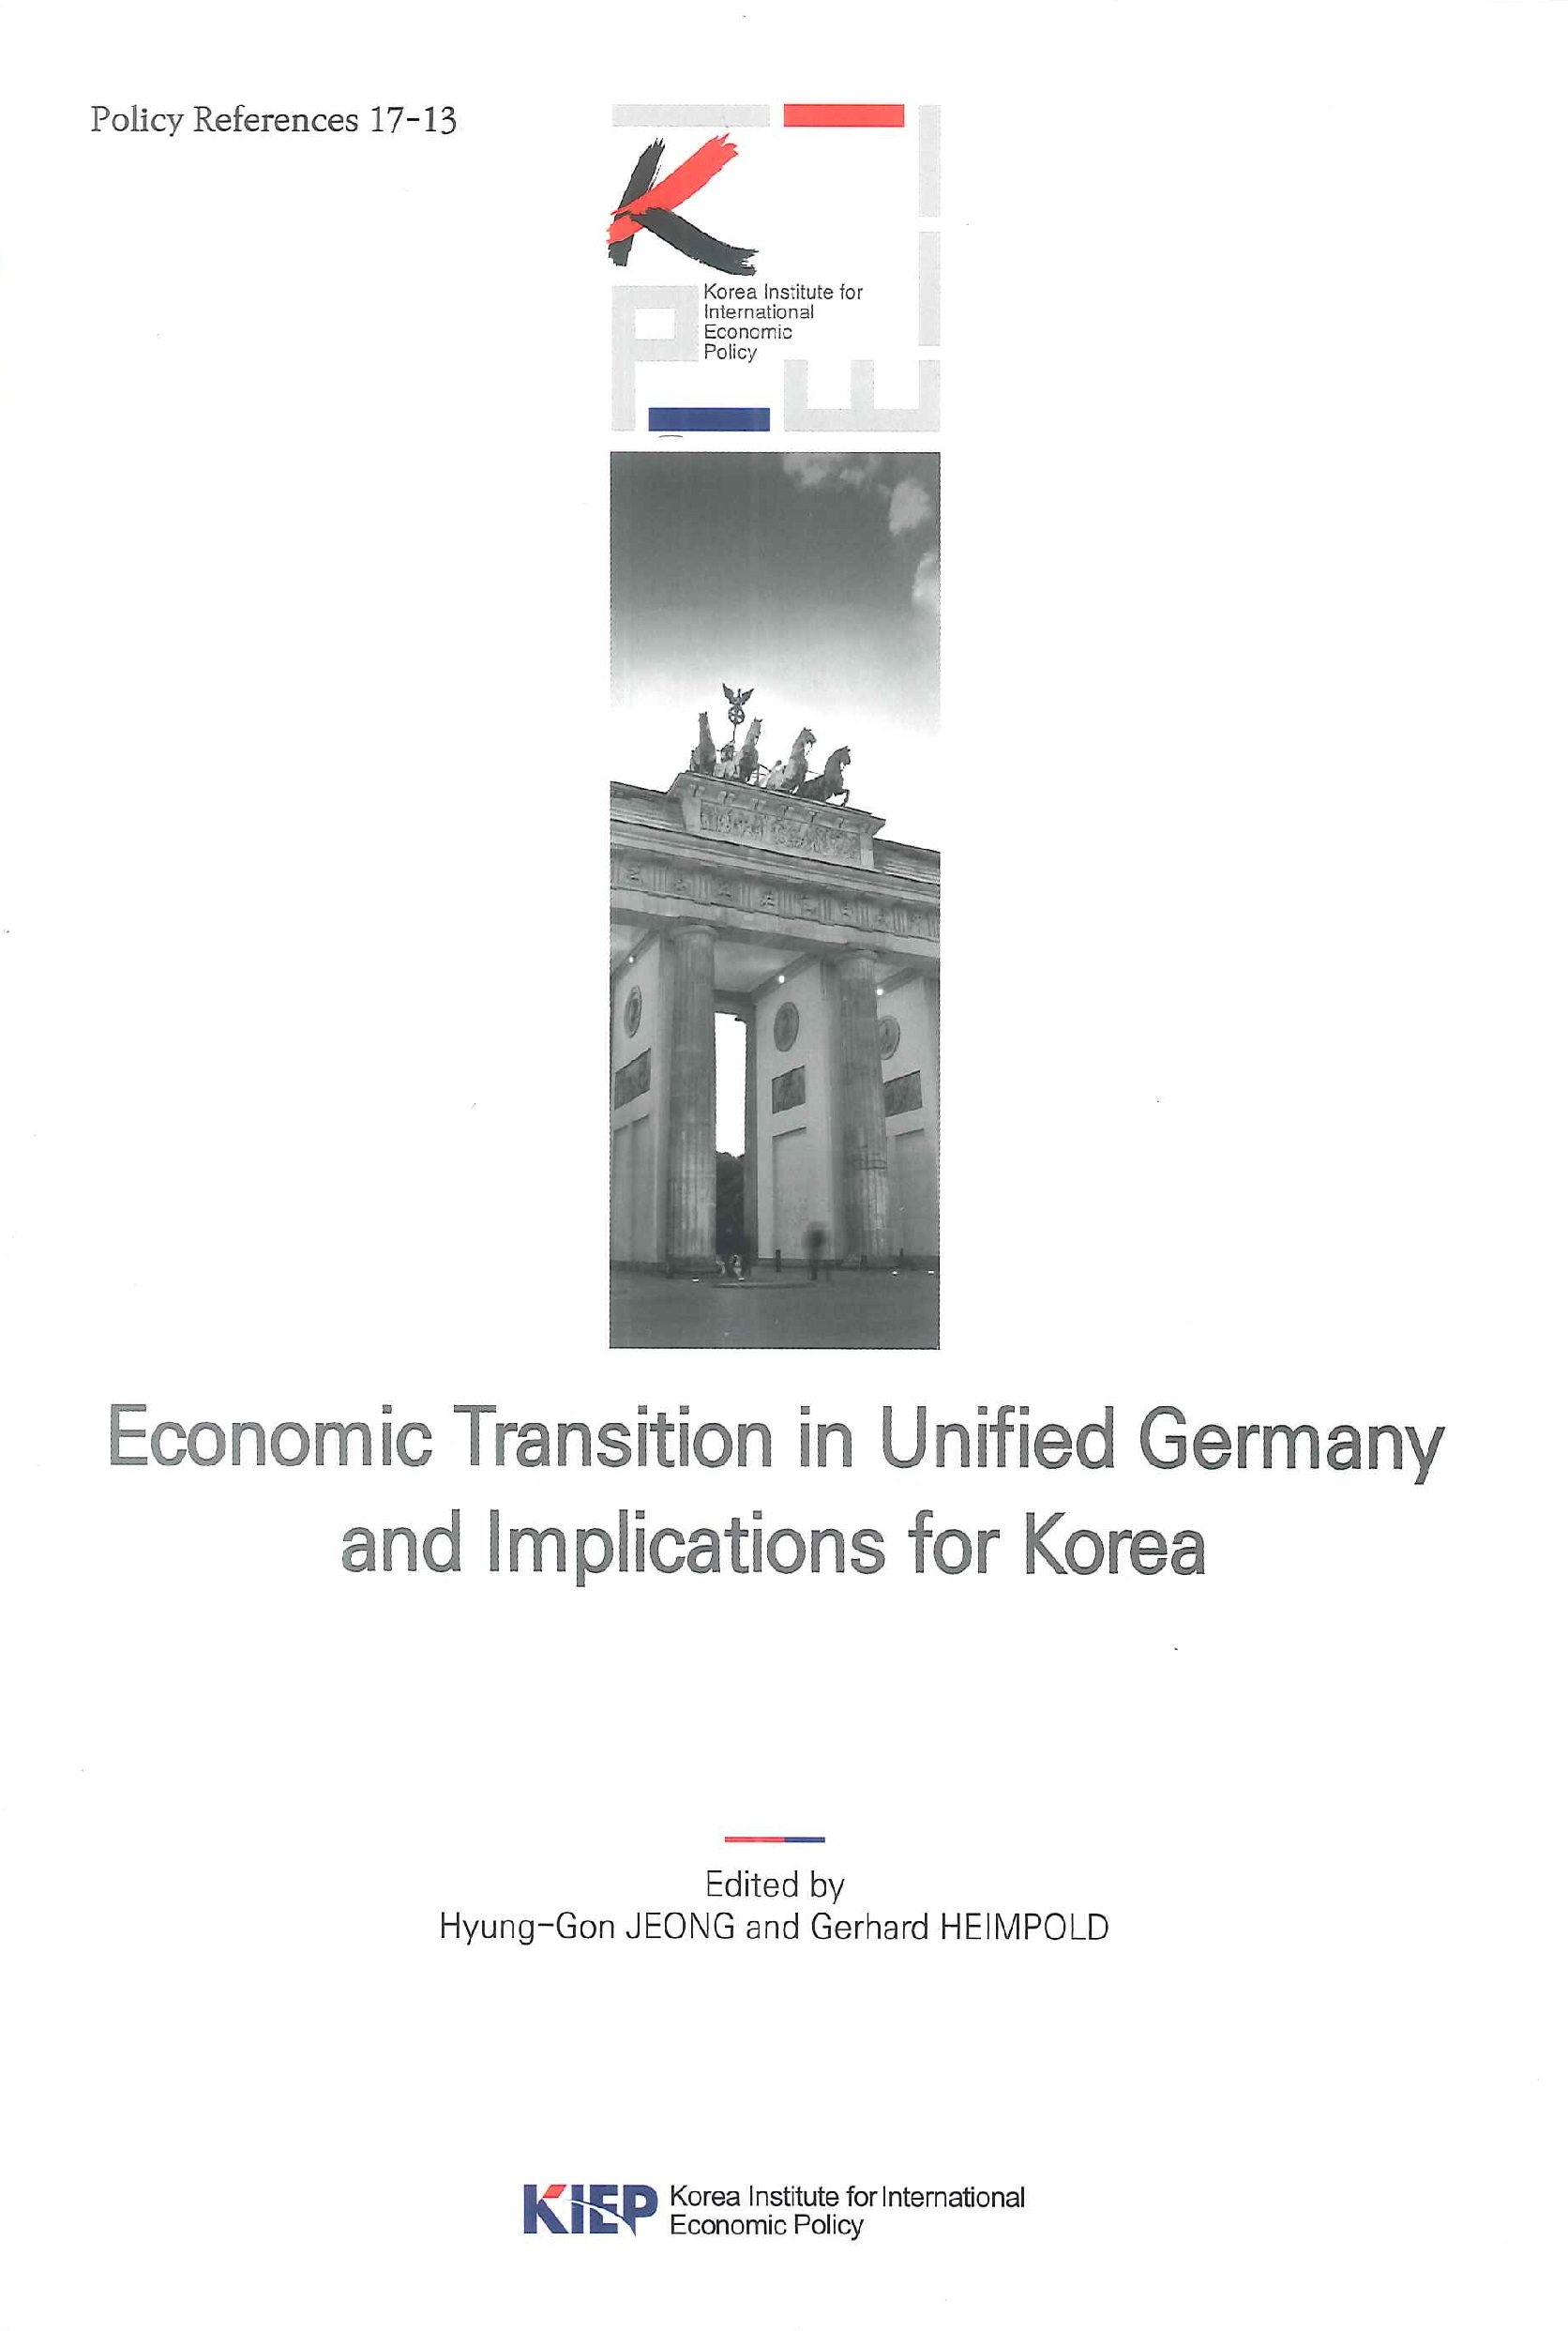 Economic transition in unified Germany and implications for Korea